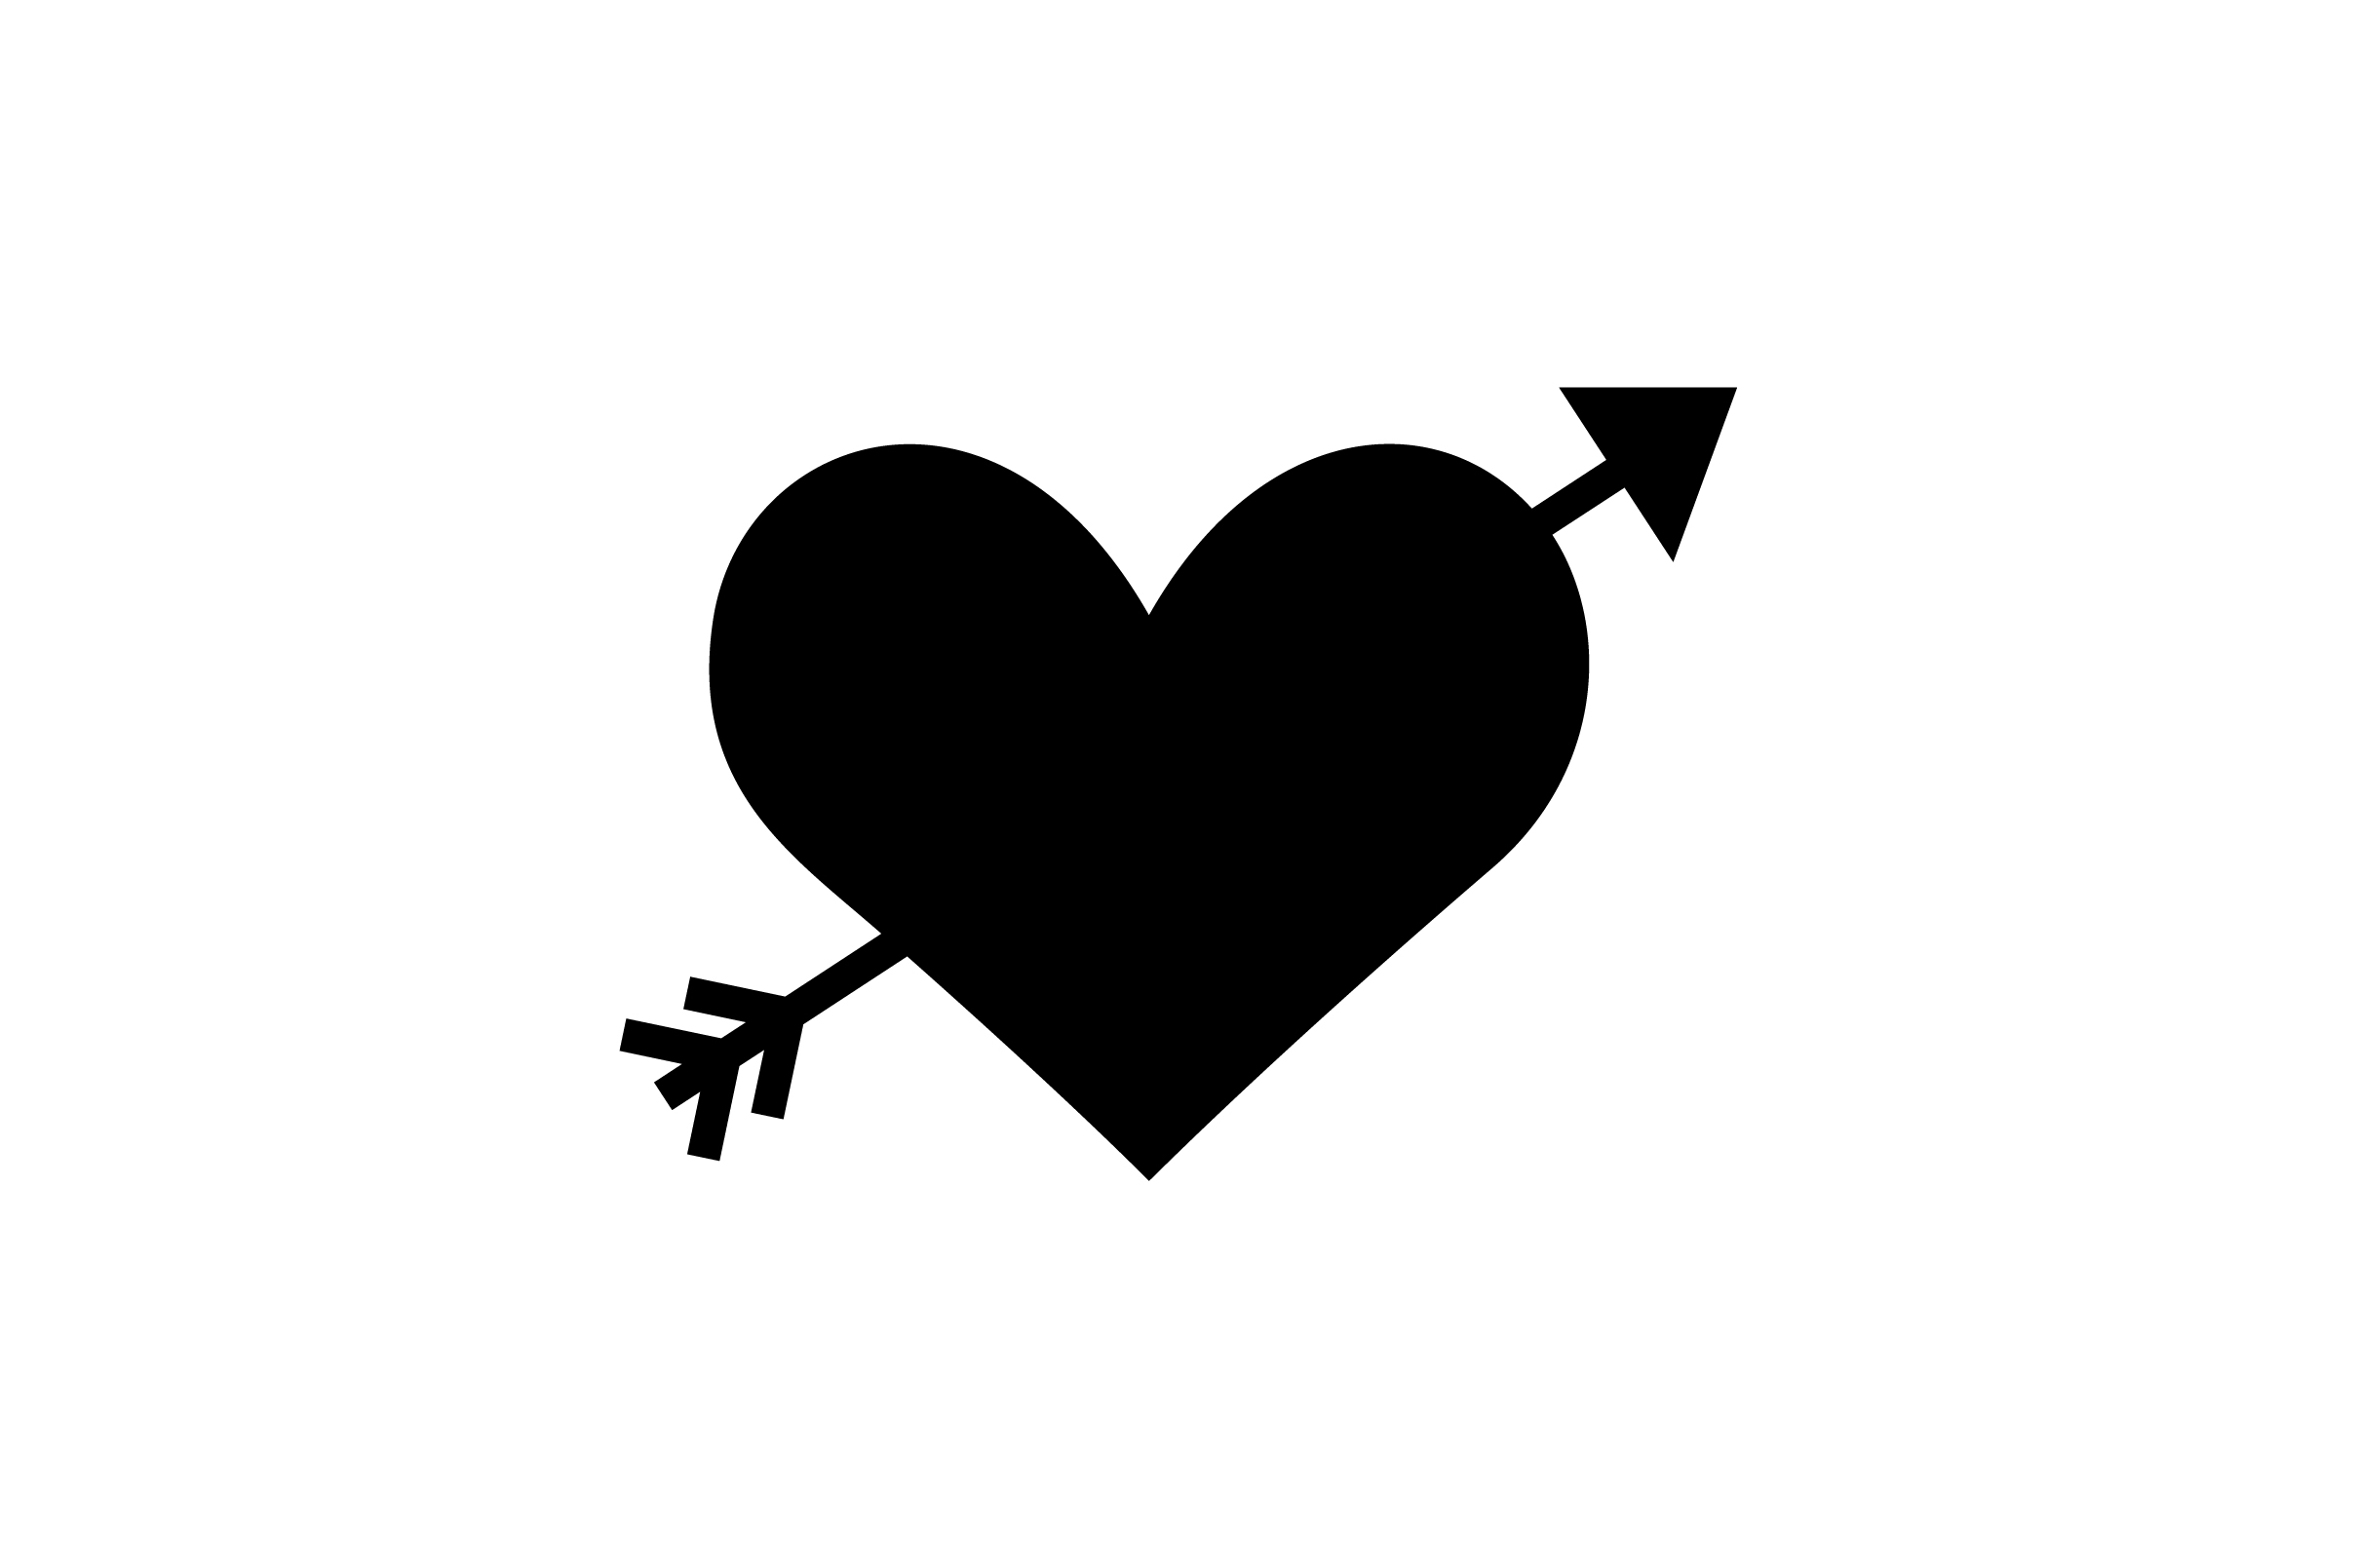 Download Free Valentine Heart With Arrow Glyph Icon Graphic By Riduwan Molla for Cricut Explore, Silhouette and other cutting machines.